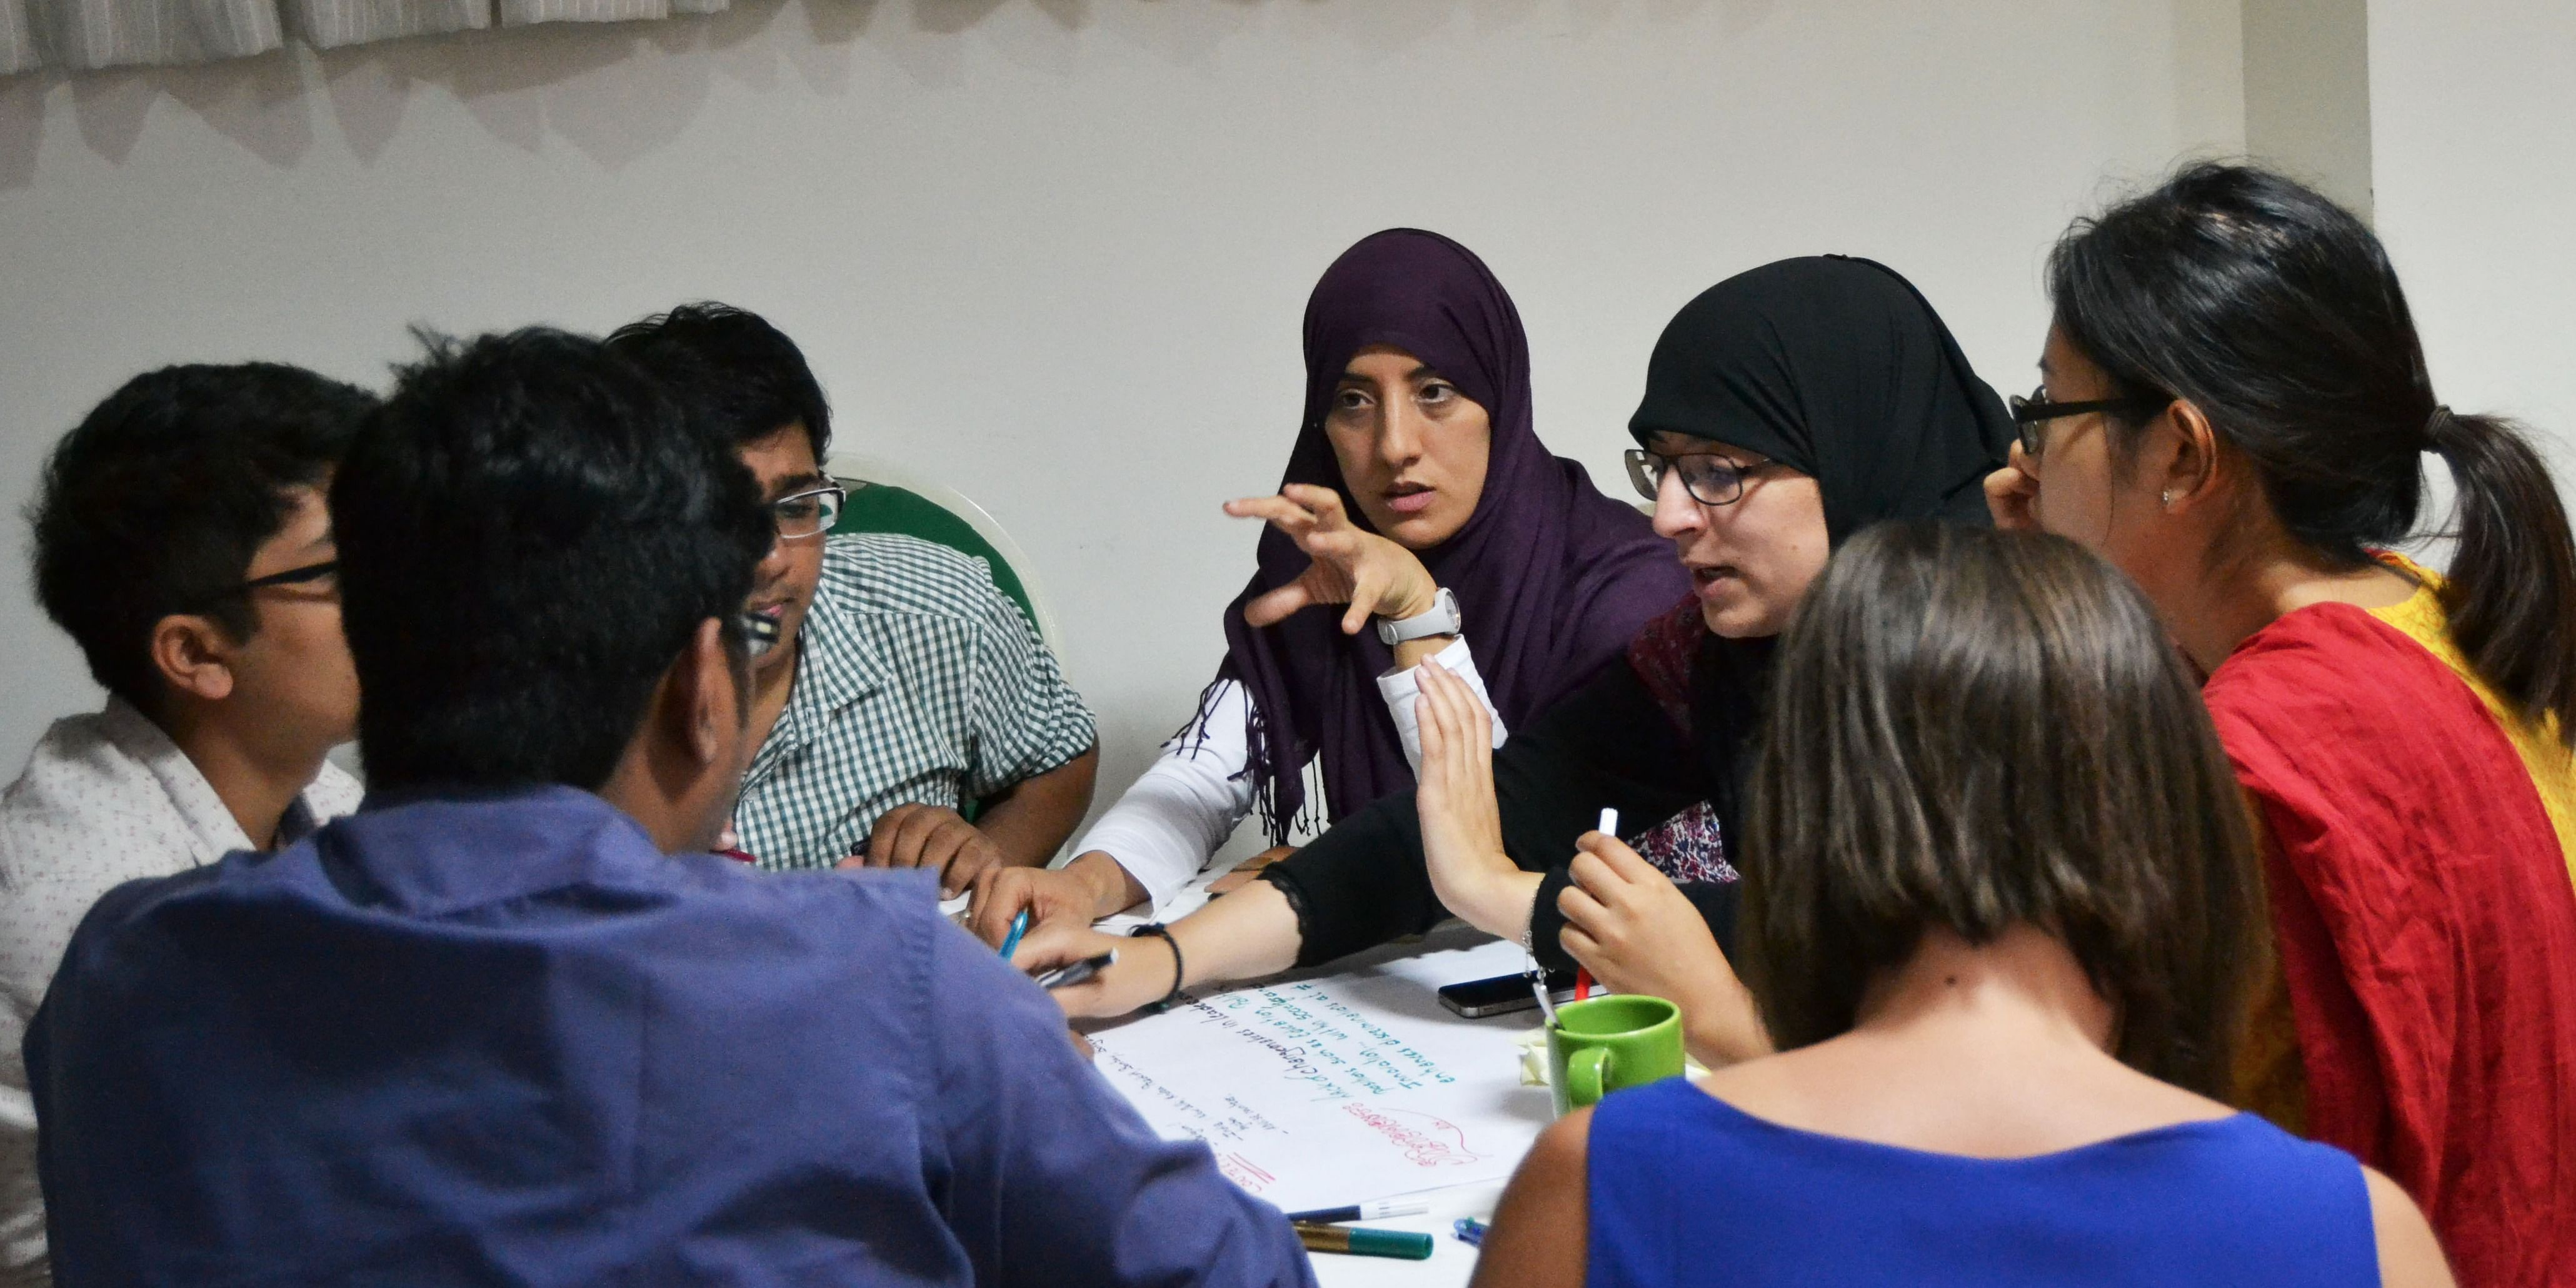 Changemakers working on developing impact projects